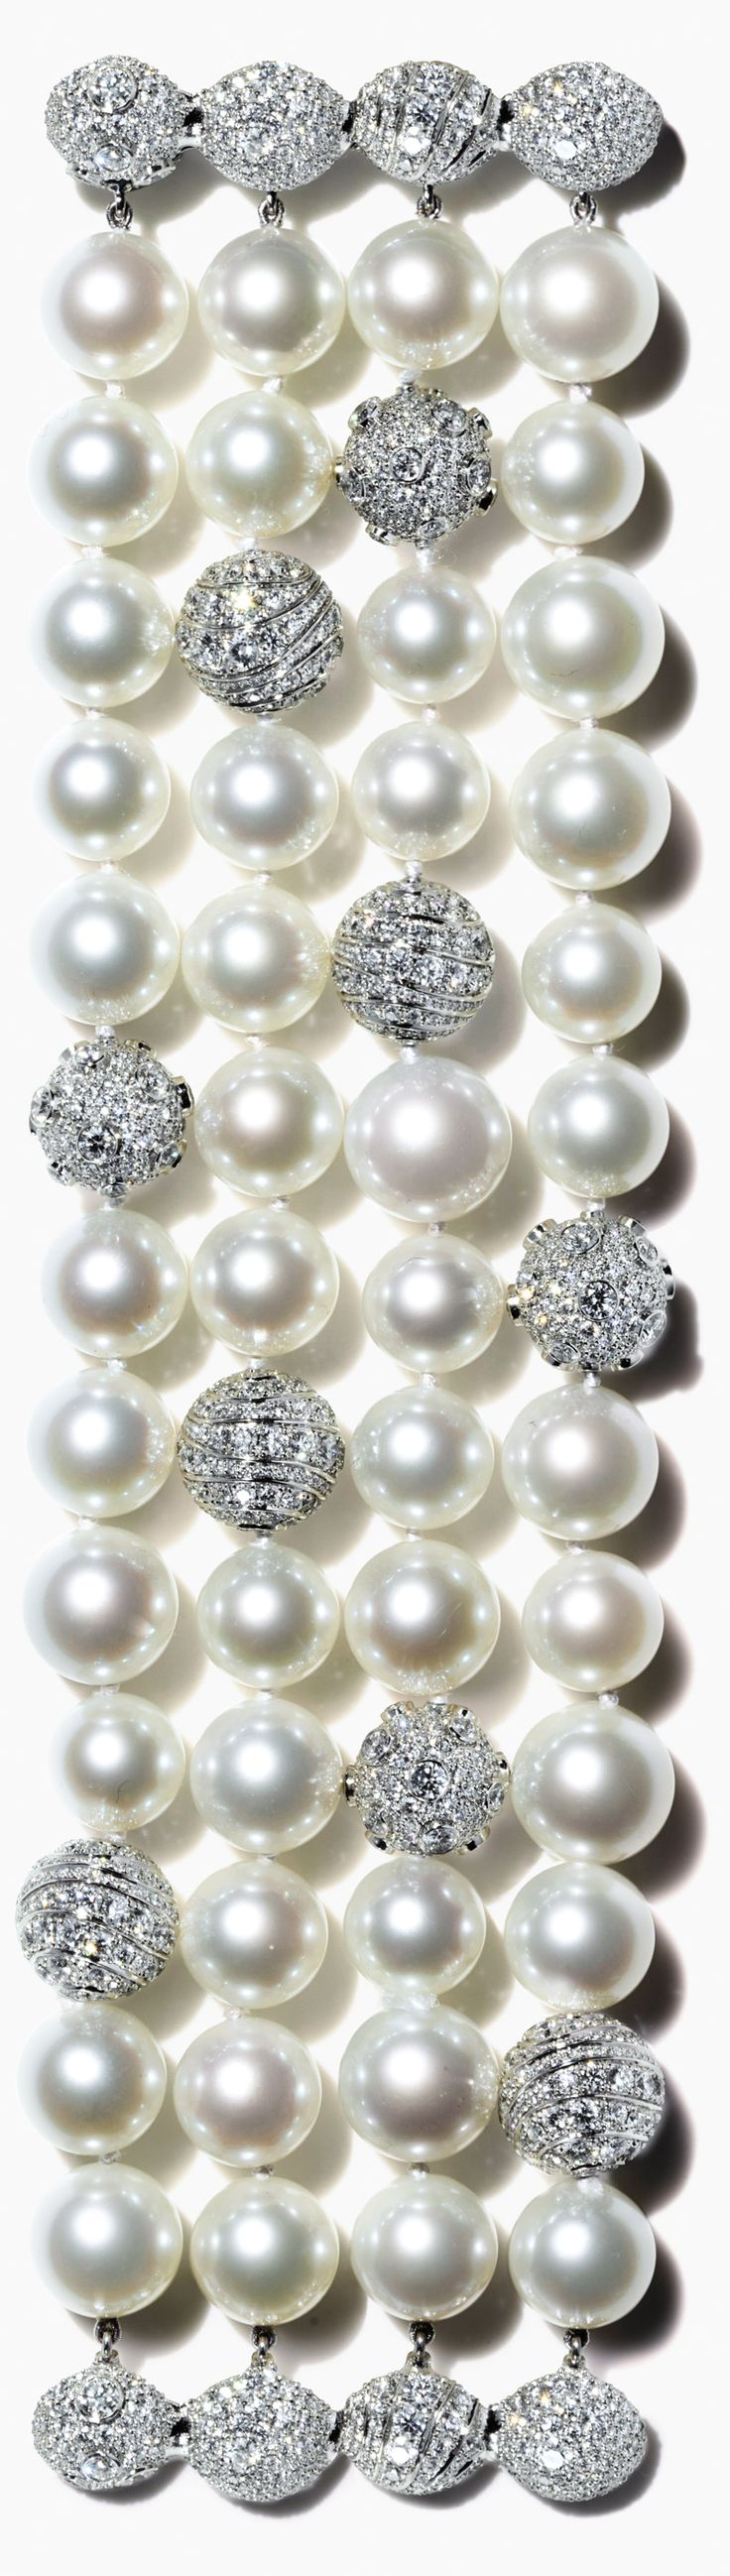 These gems of the South Seas drape the wrist with elegant ease and reflect Tiffany's reputation for the finest pearls.